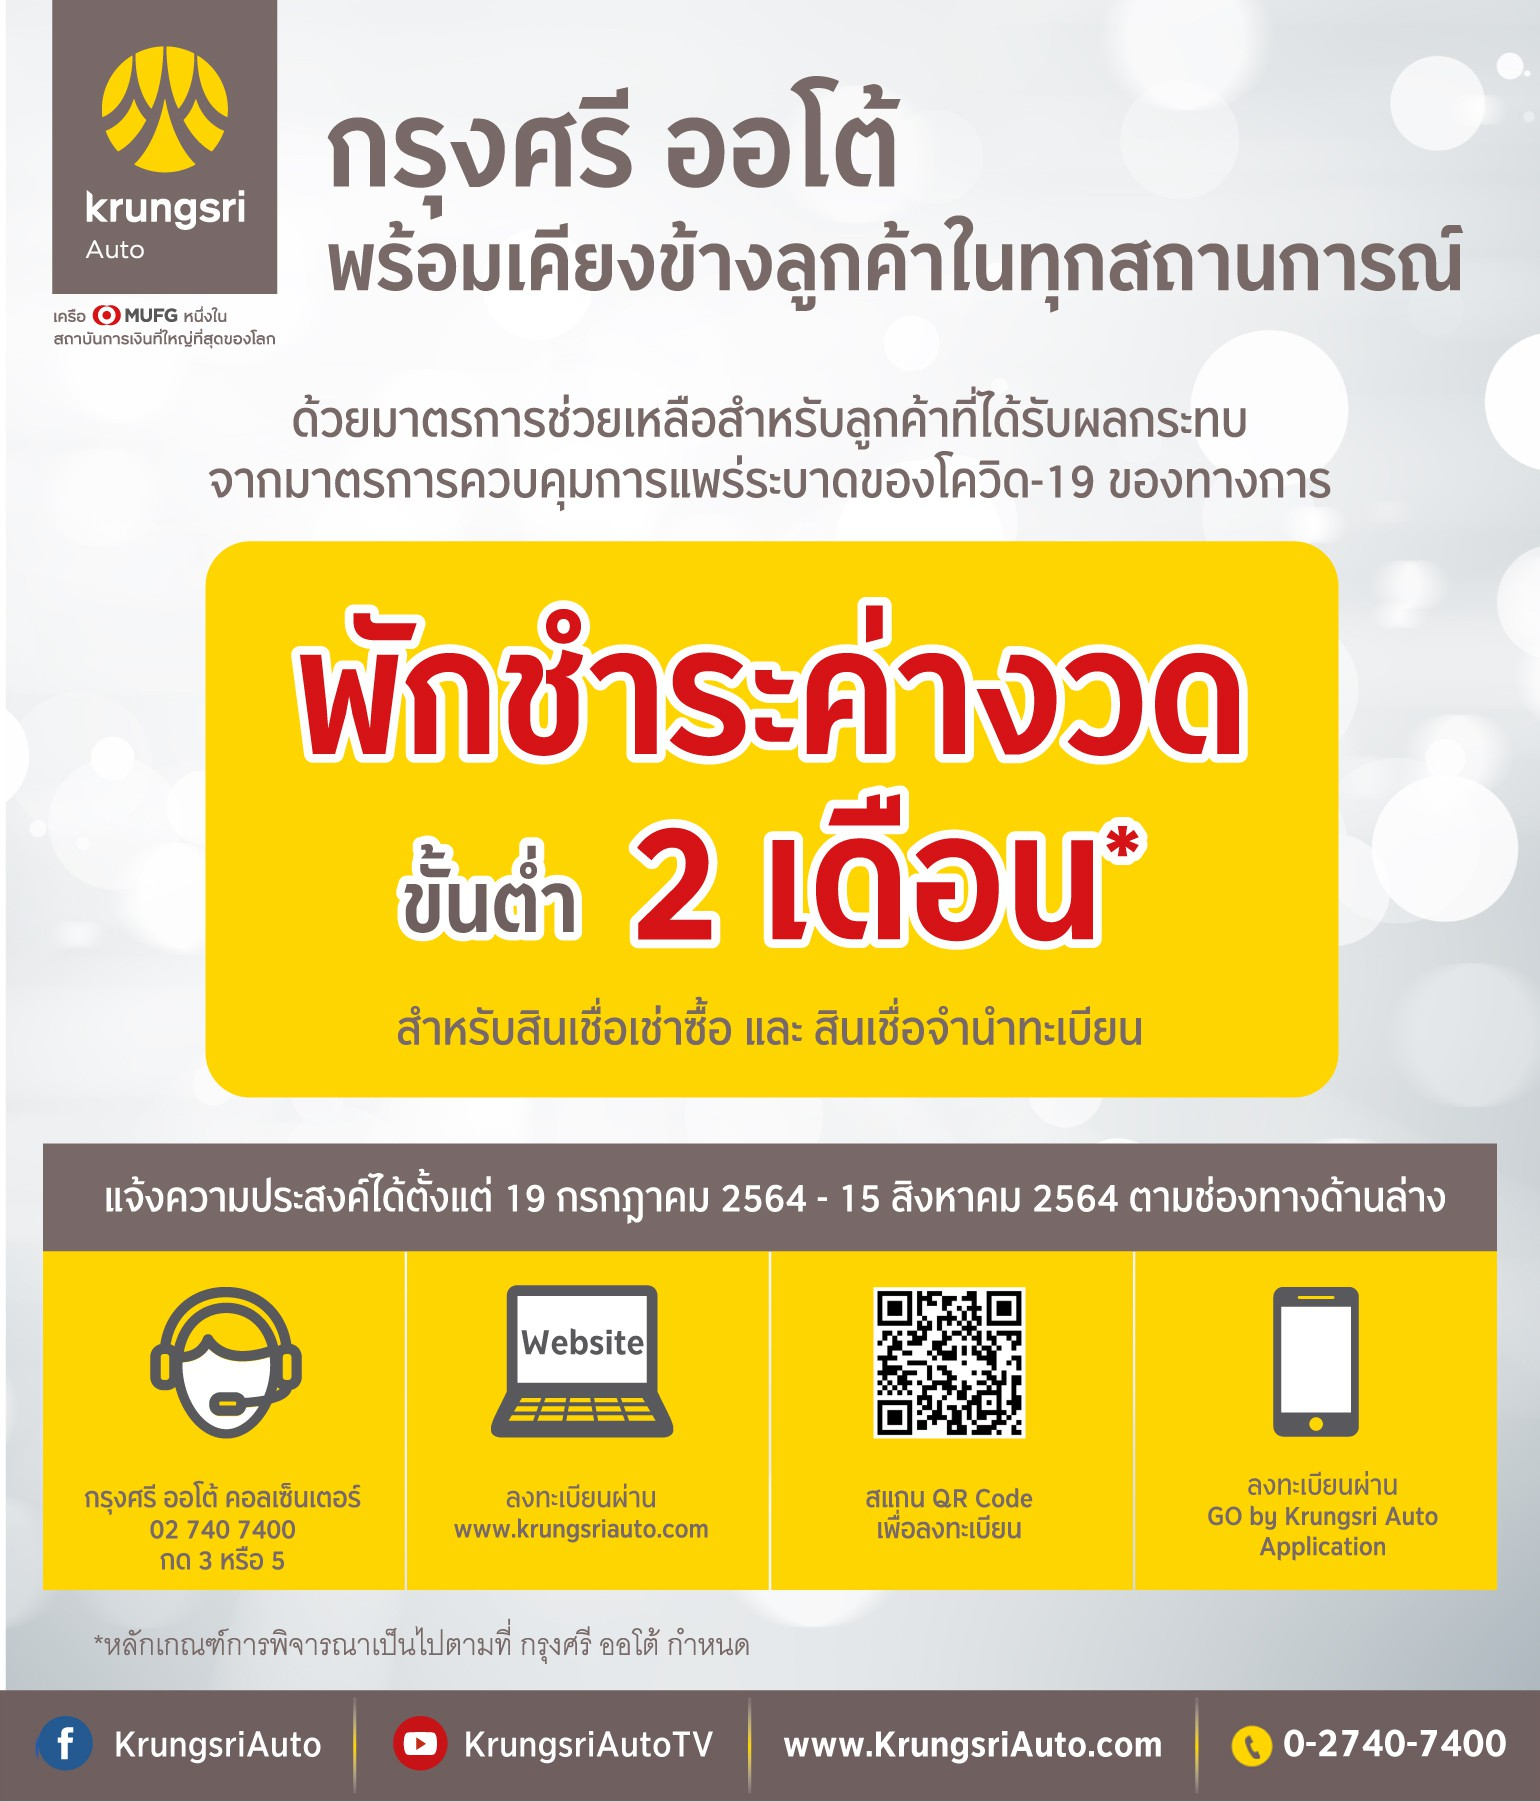 Infographic Krungsri Auto COVID 19 additional relief measures